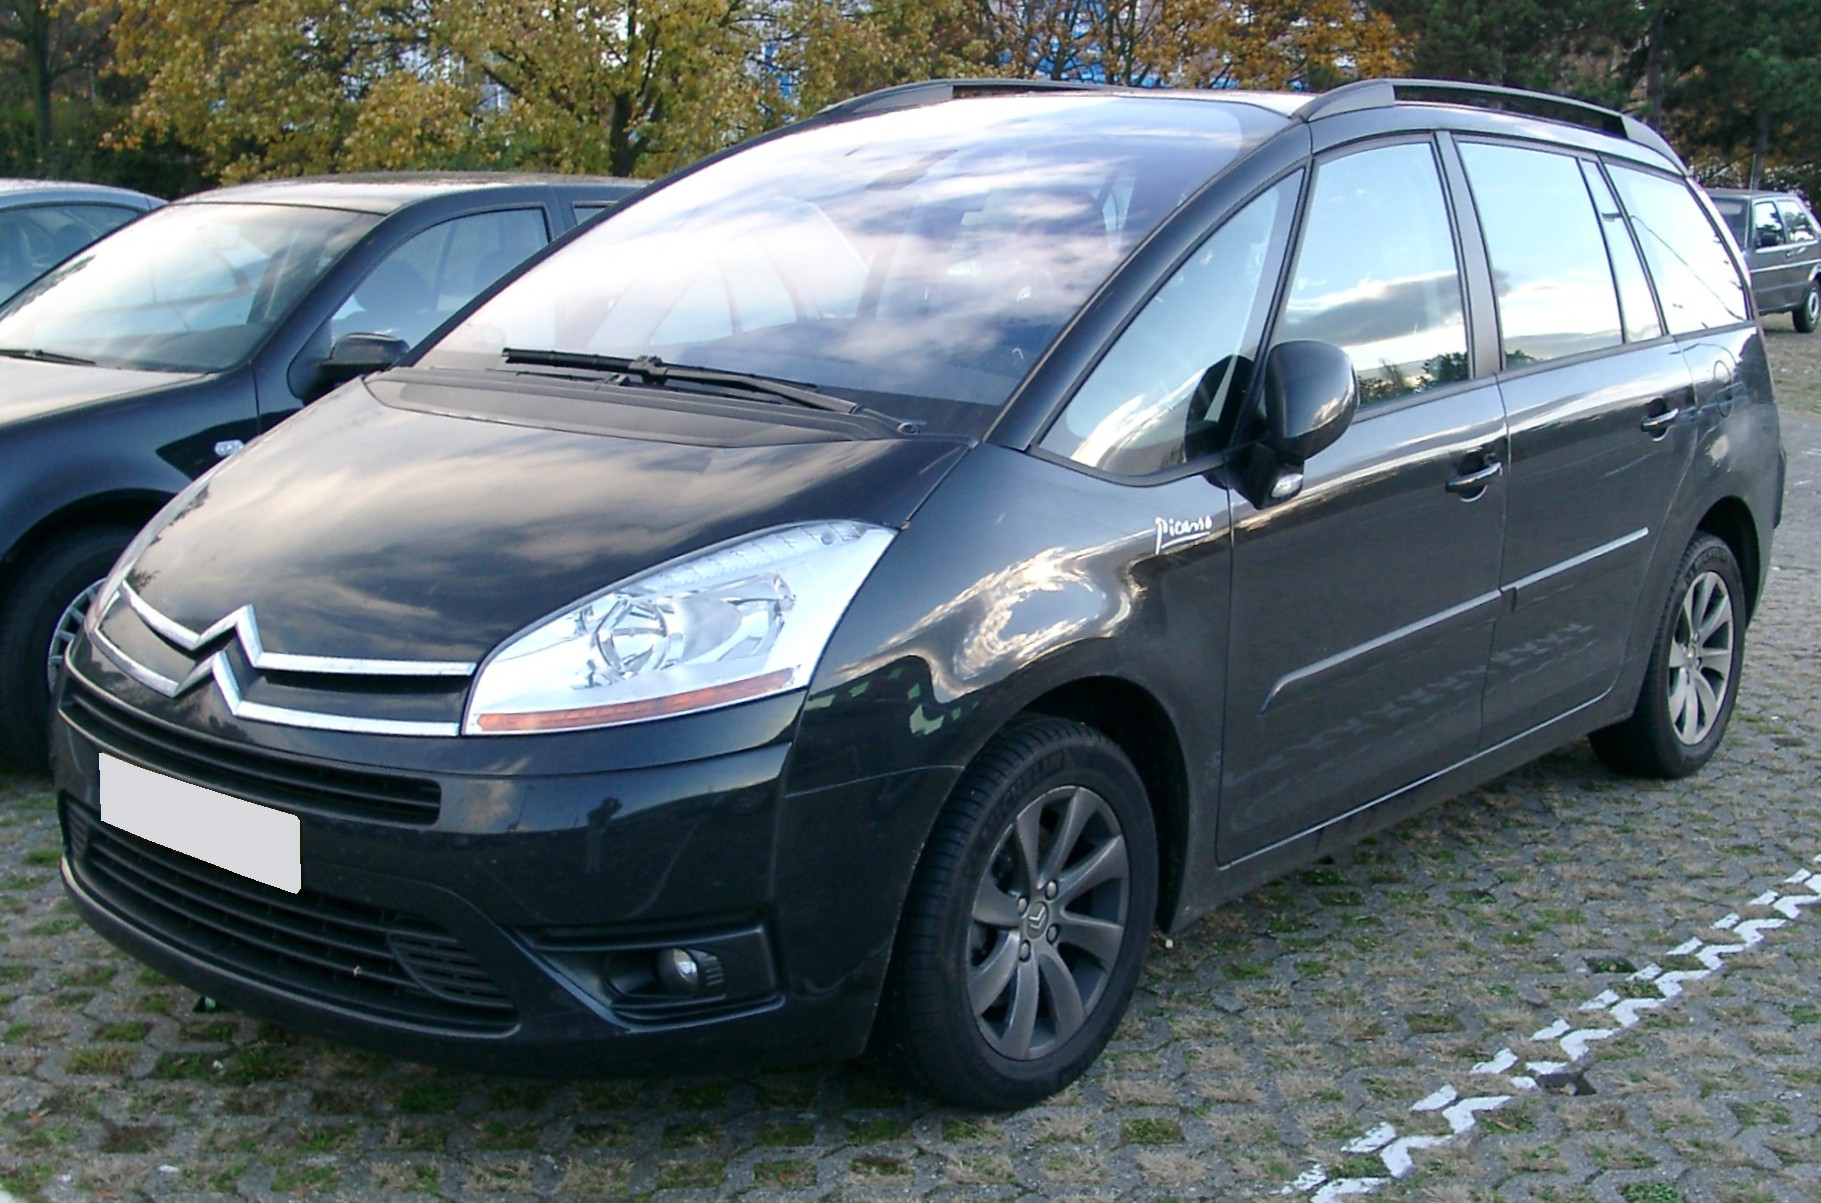 f jl citroen c4 grand picasso front wikip dia. Black Bedroom Furniture Sets. Home Design Ideas